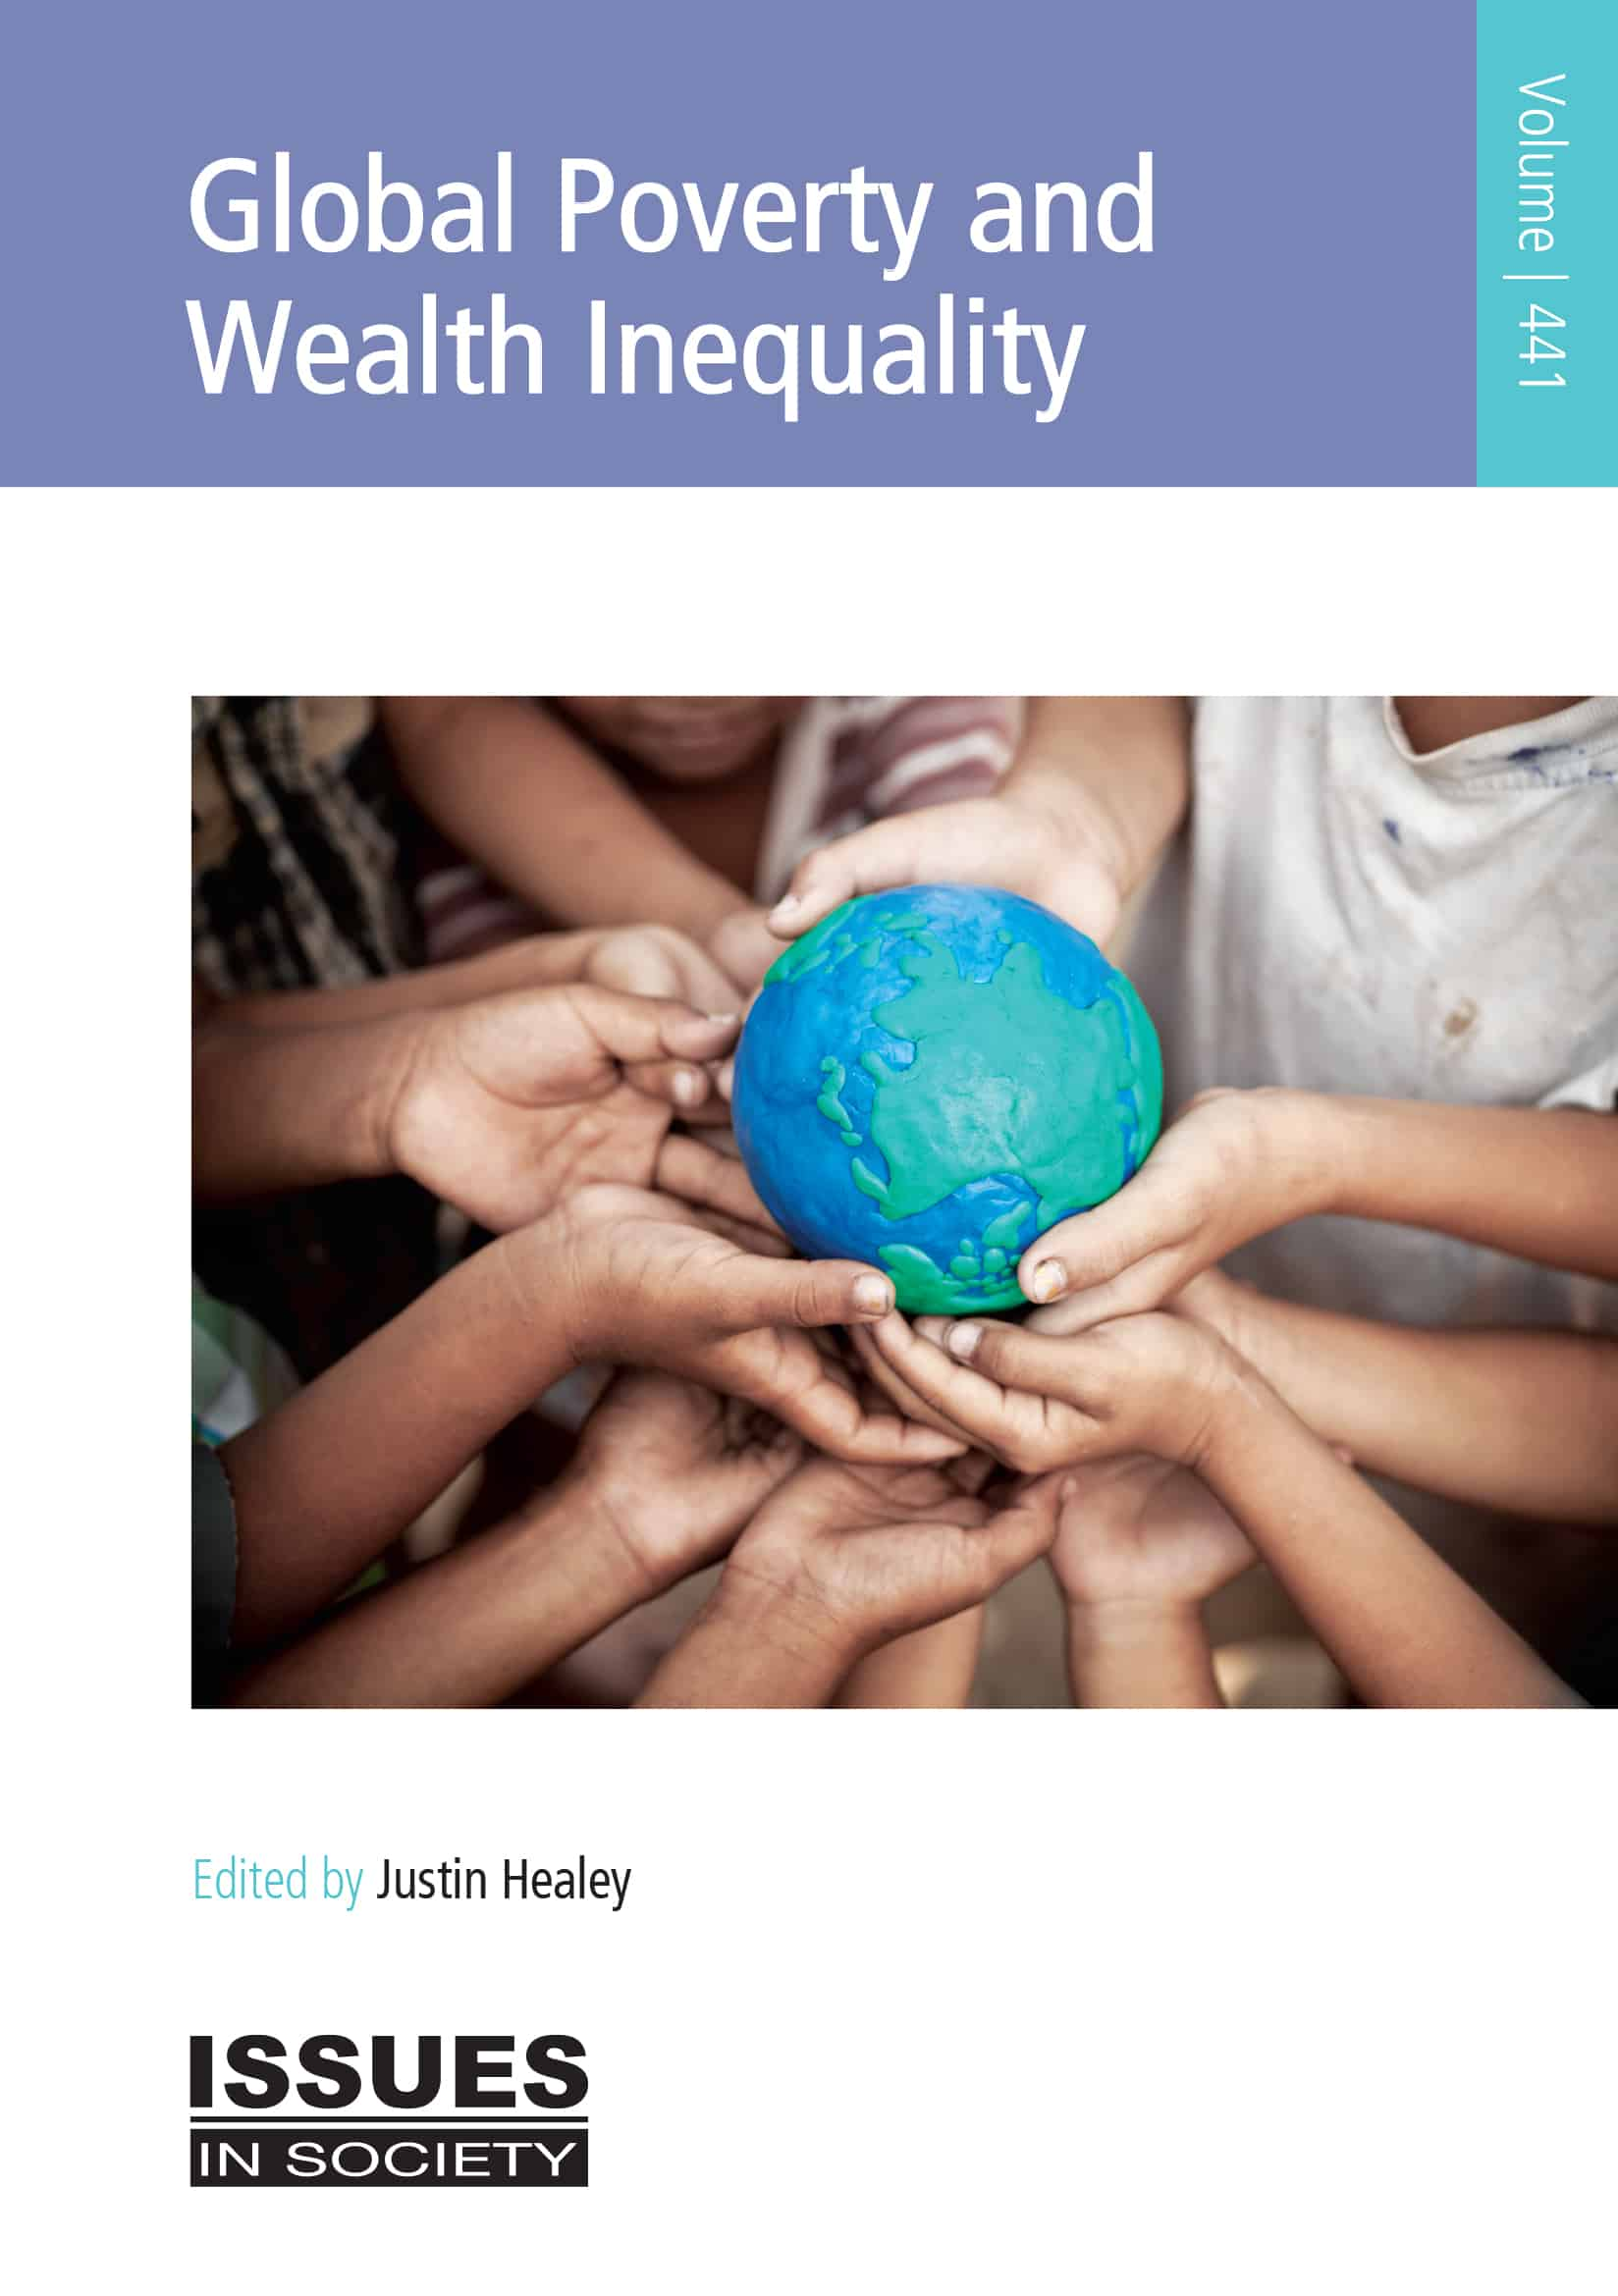 Global Poverty and Wealth Inequality